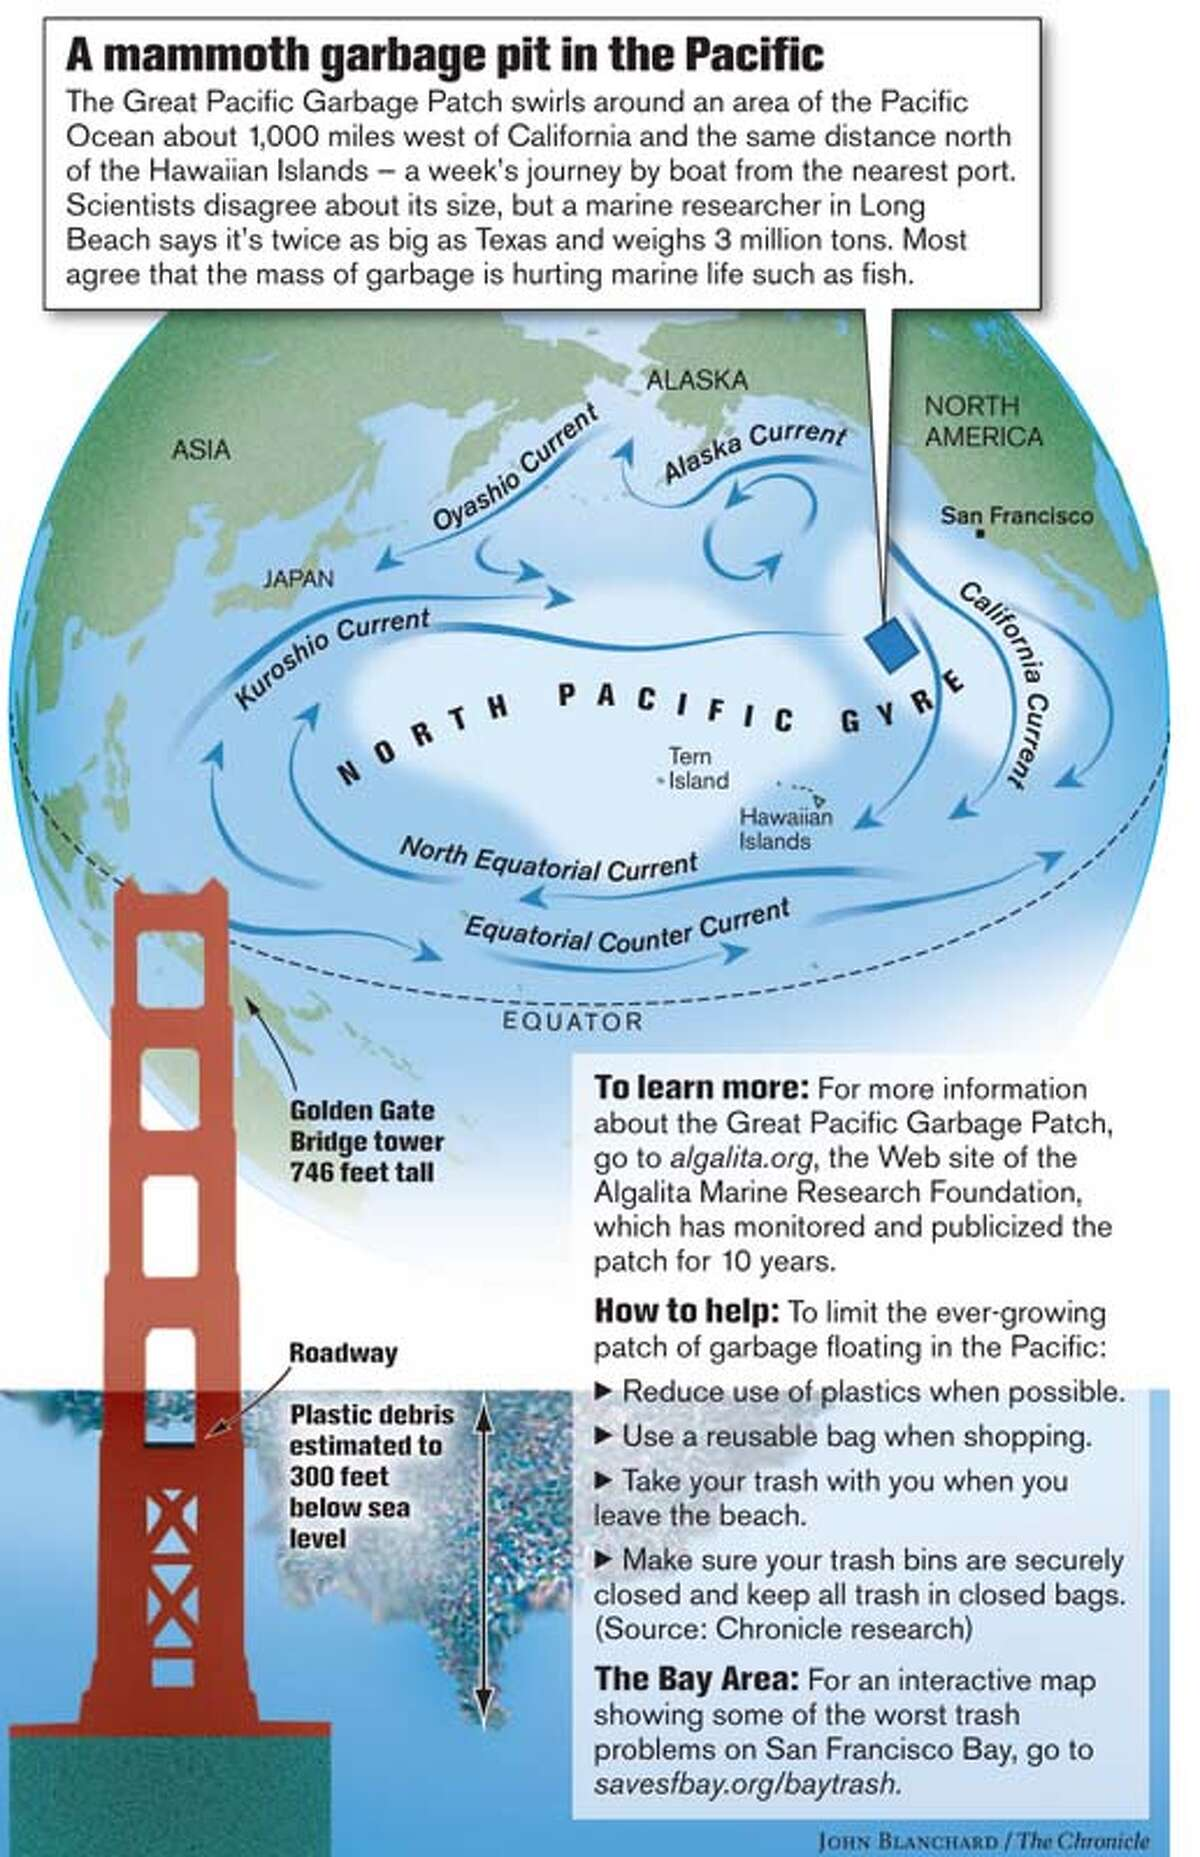 A Mammoth Garbage Pit in the Pacific. Chronicle graphic by John Blanchard